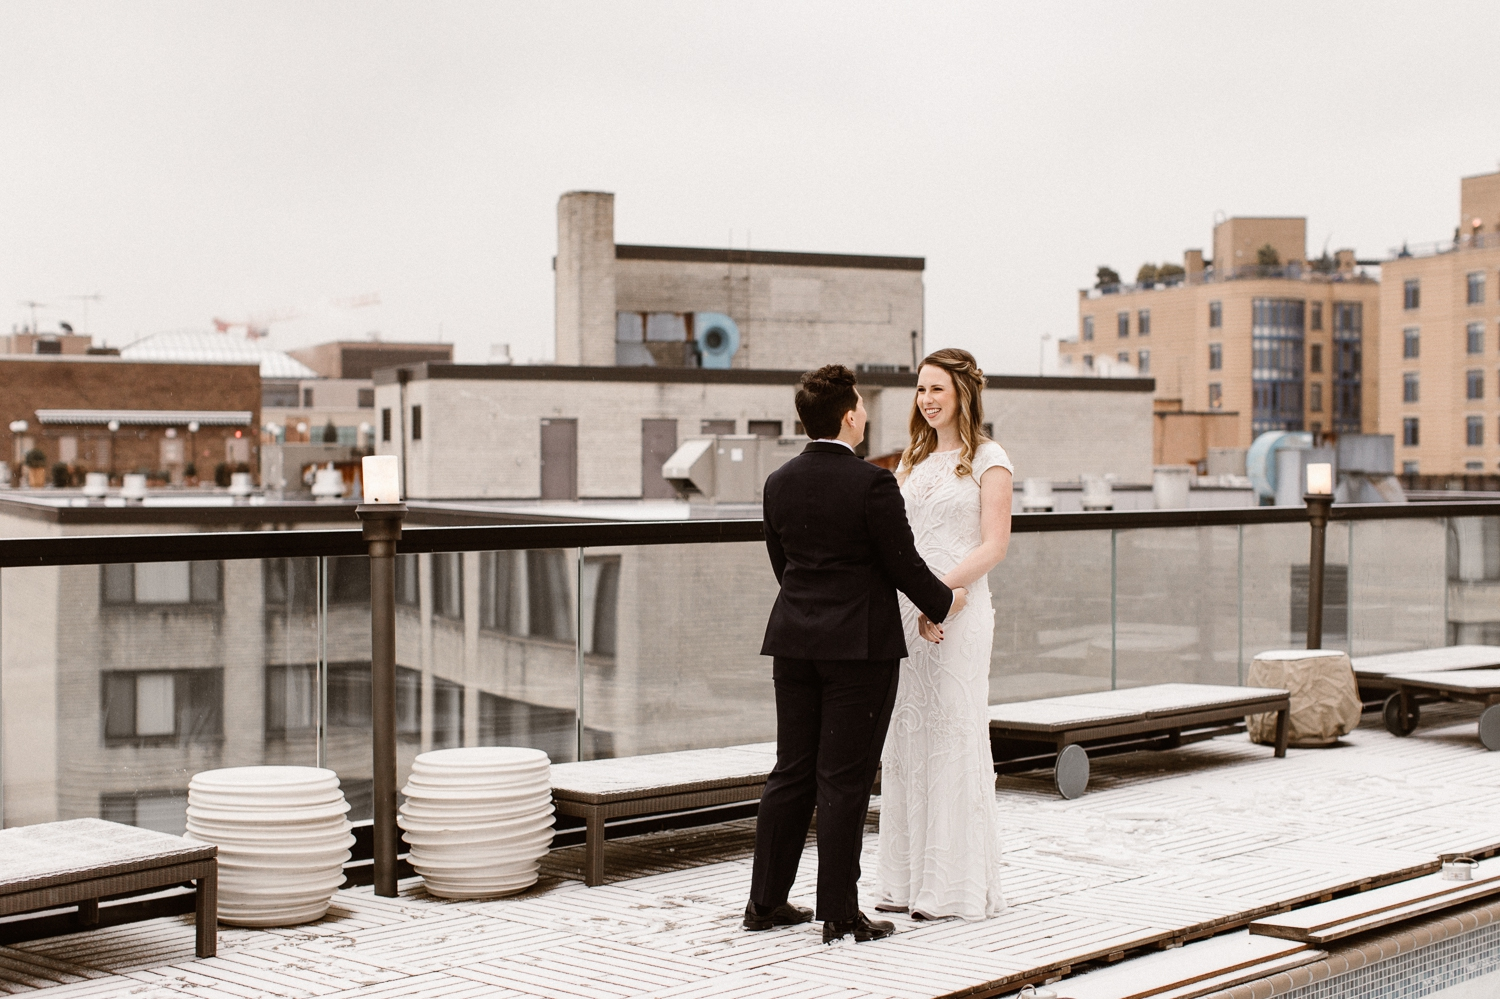 mason-and-rook-first-look-rooftop-josephine-butler-parks-wedding-photographer 52.jpg